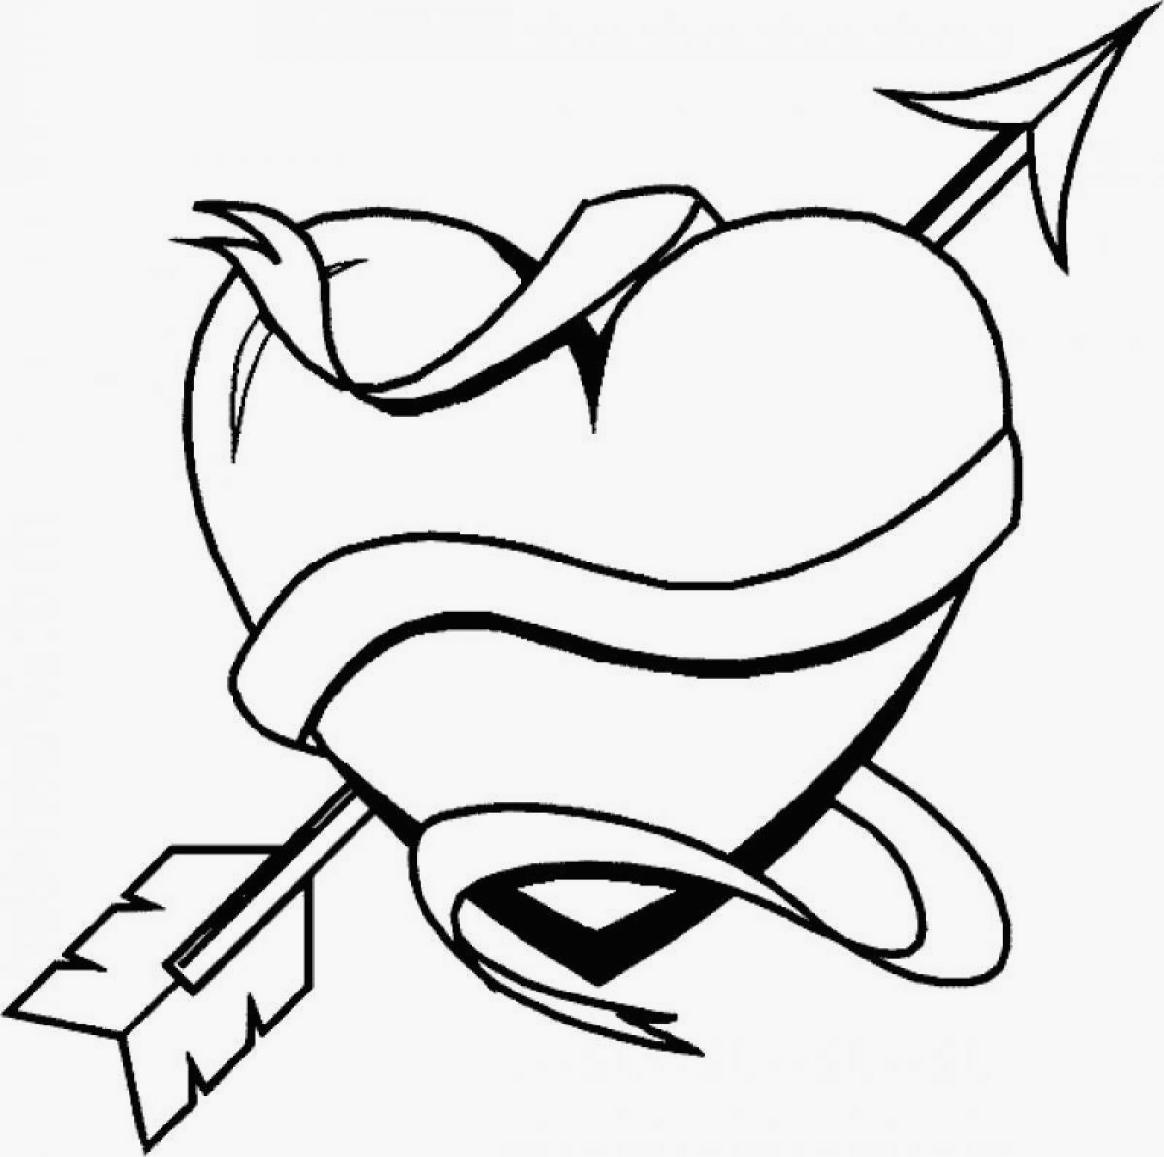 cool pictures to print the best free cool coloring page images download from to print cool pictures